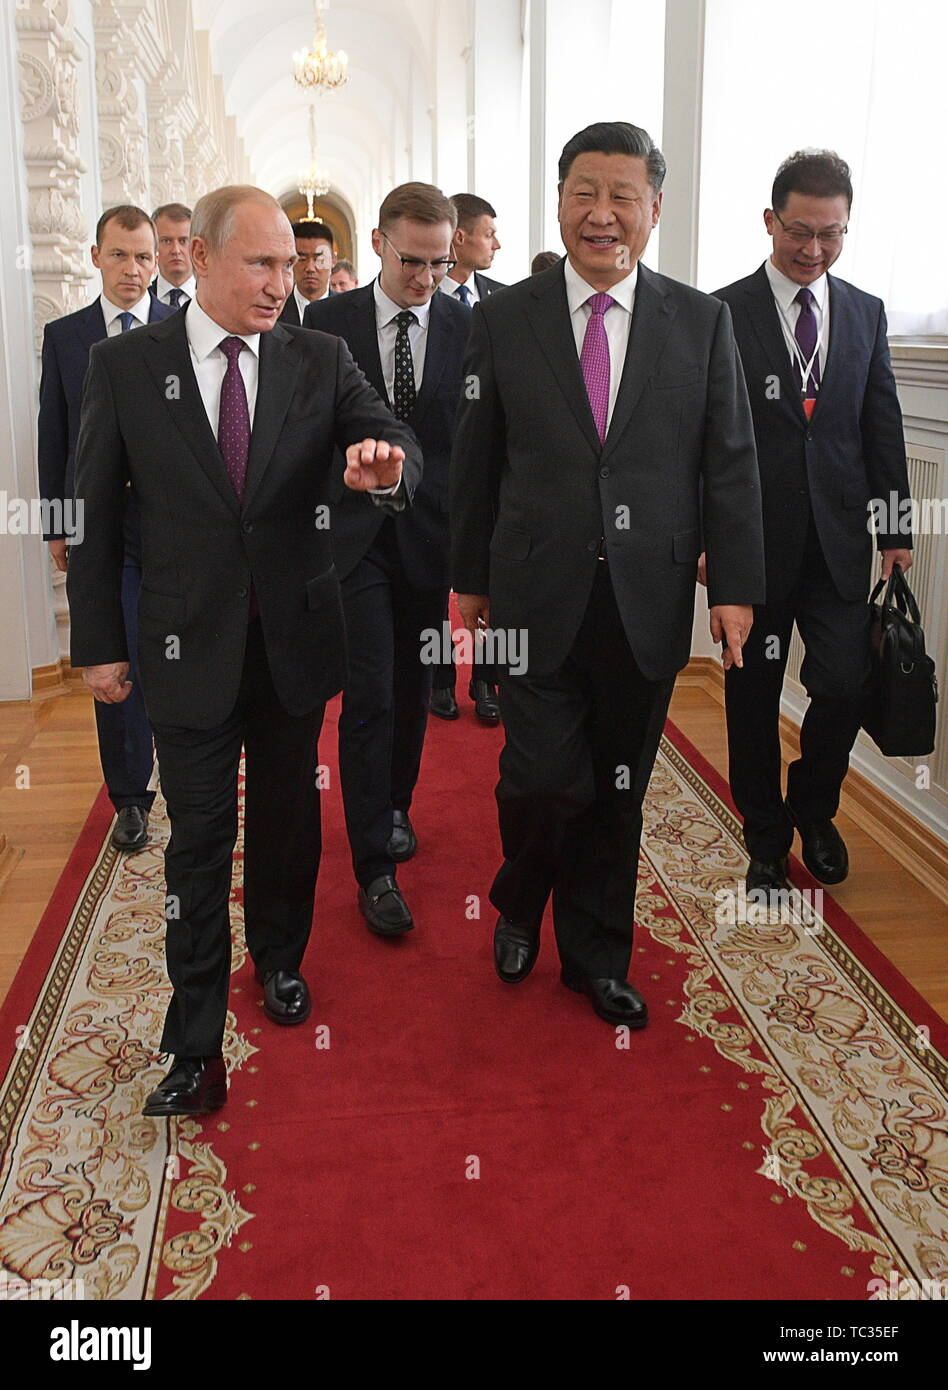 Moscow, Russia. 05th June, 2019. MOSCOW, RUSSIA - JUNE 5, 2019: China's President Xi Jinping and Russia's President Vladimir Putin (R-L front) ahead of Russian-Chinese talks at the Moscow Kremlin. Alexei Druzhinin/Russian Presidential Press and Information Office/TASS Credit: ITAR-TASS News Agency/Alamy Live News - Stock Image